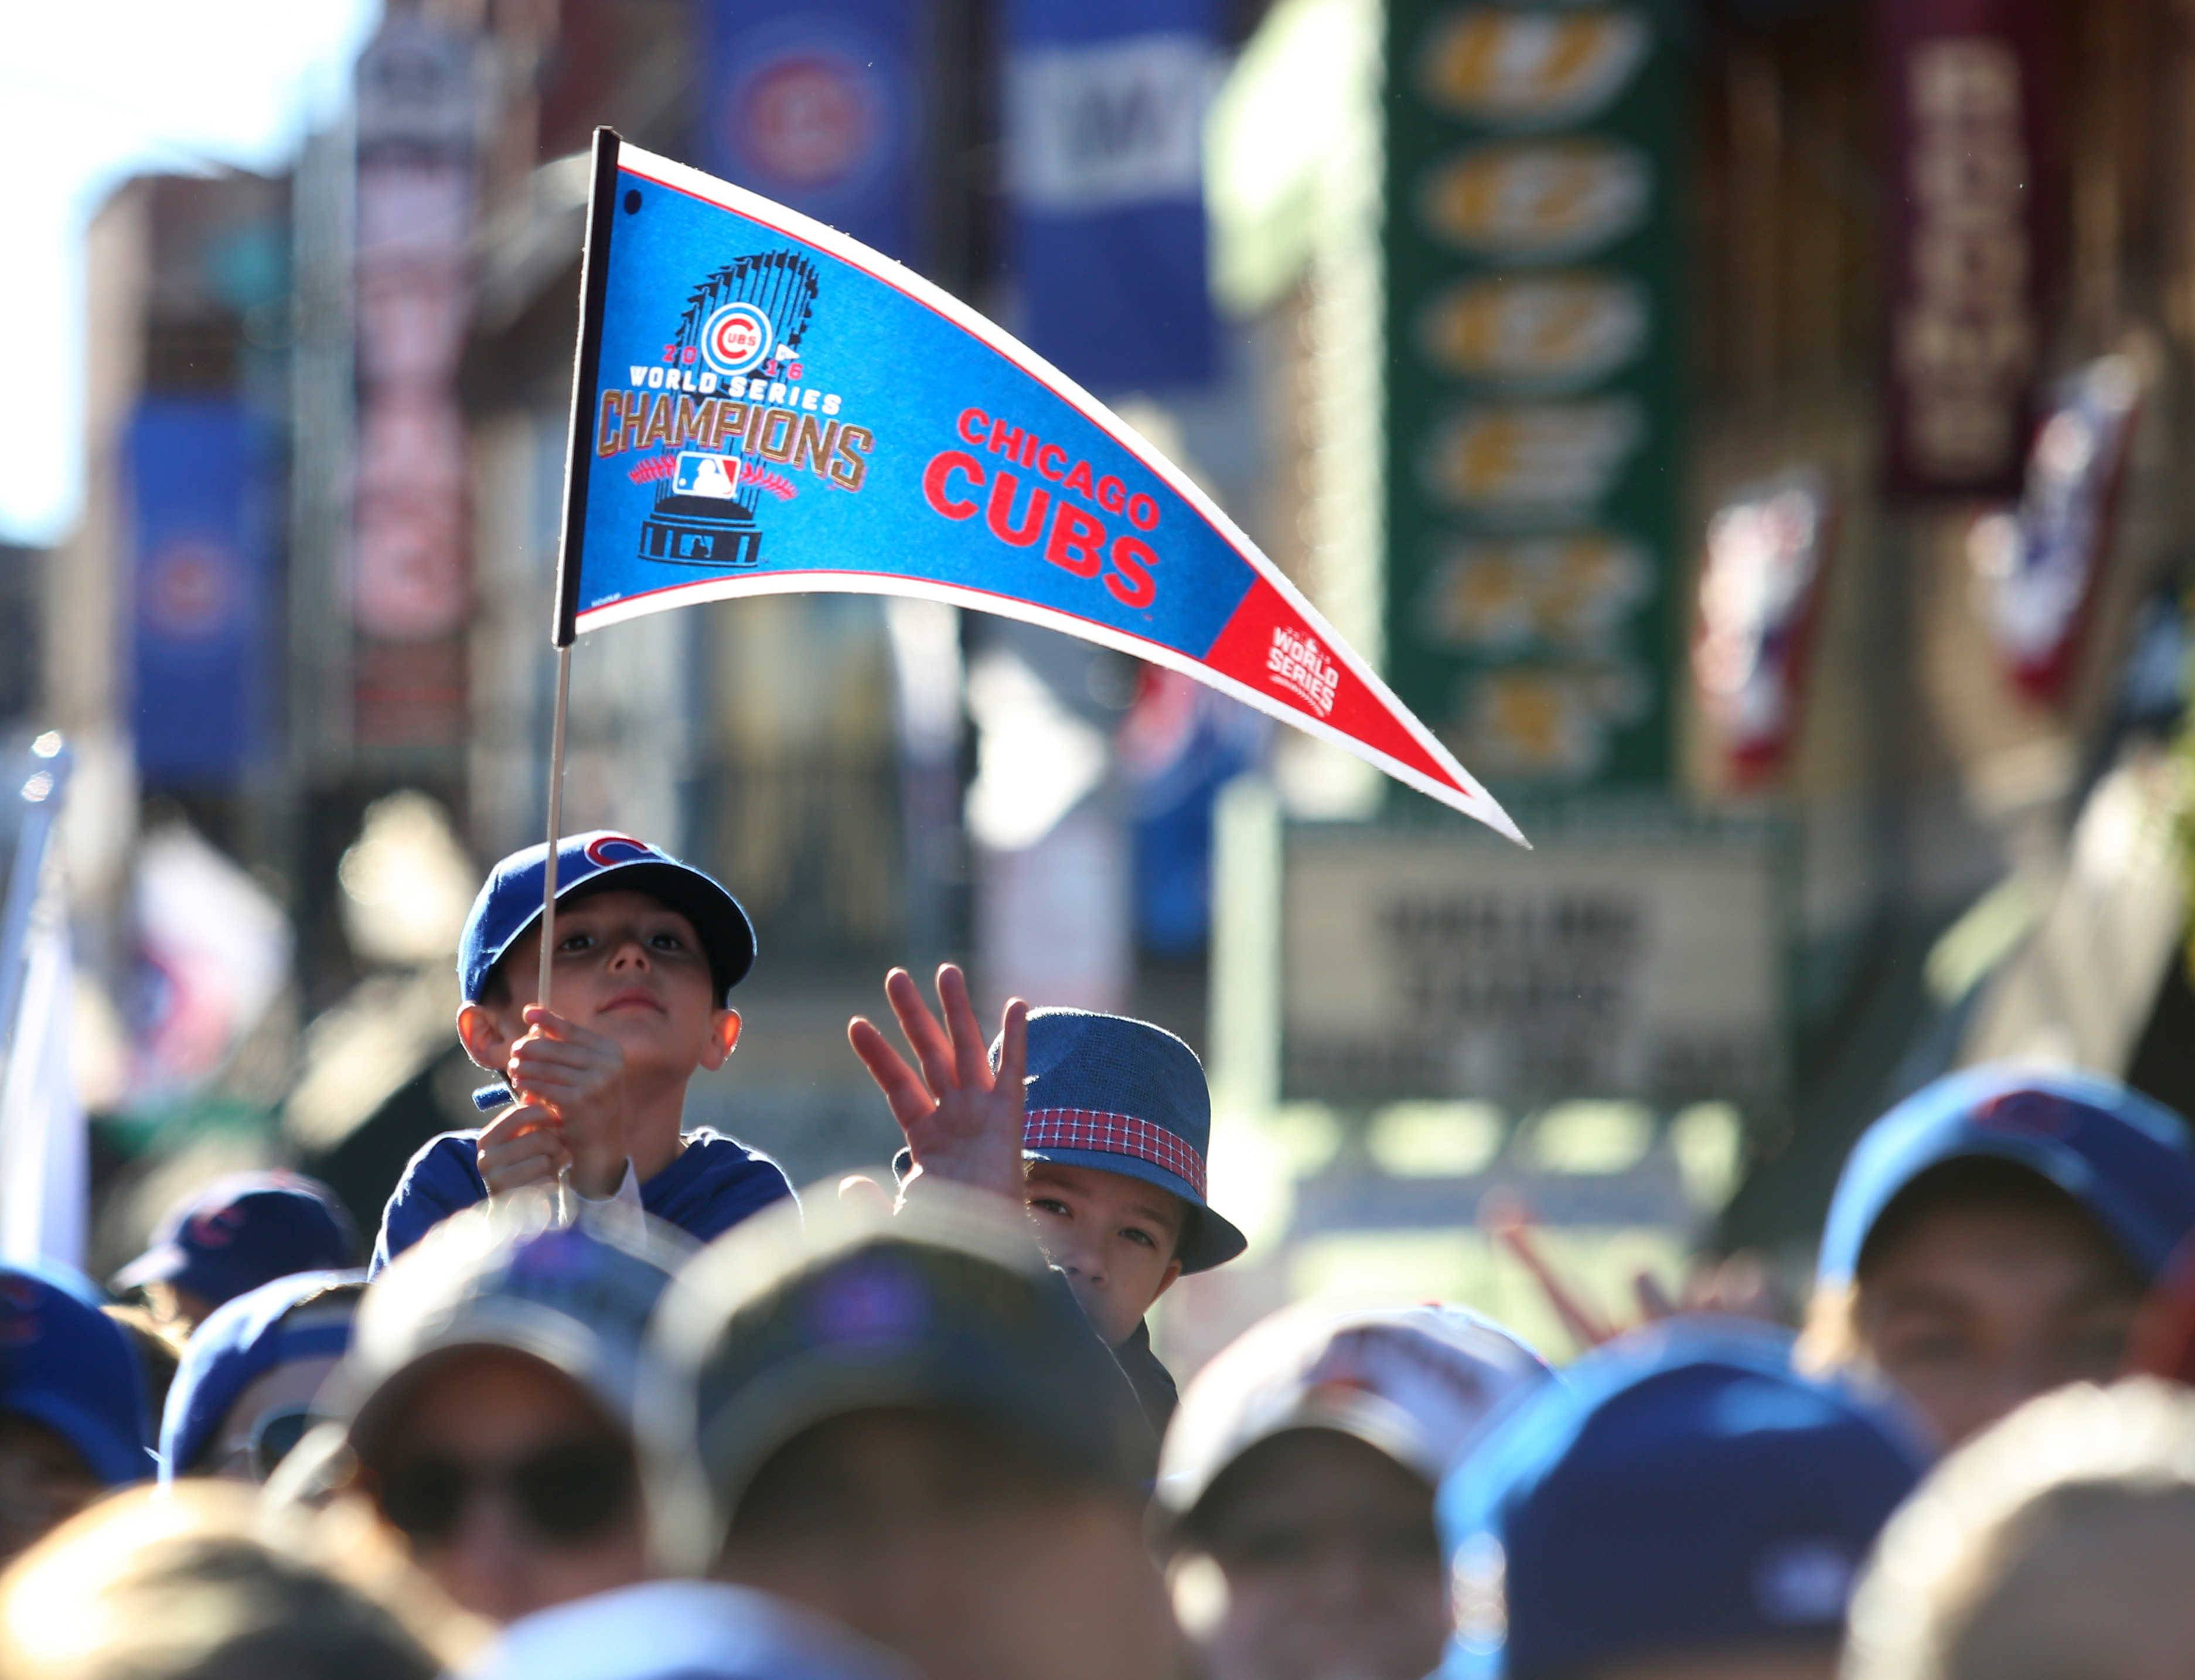 6 suburbanites' views of the Cubs rally